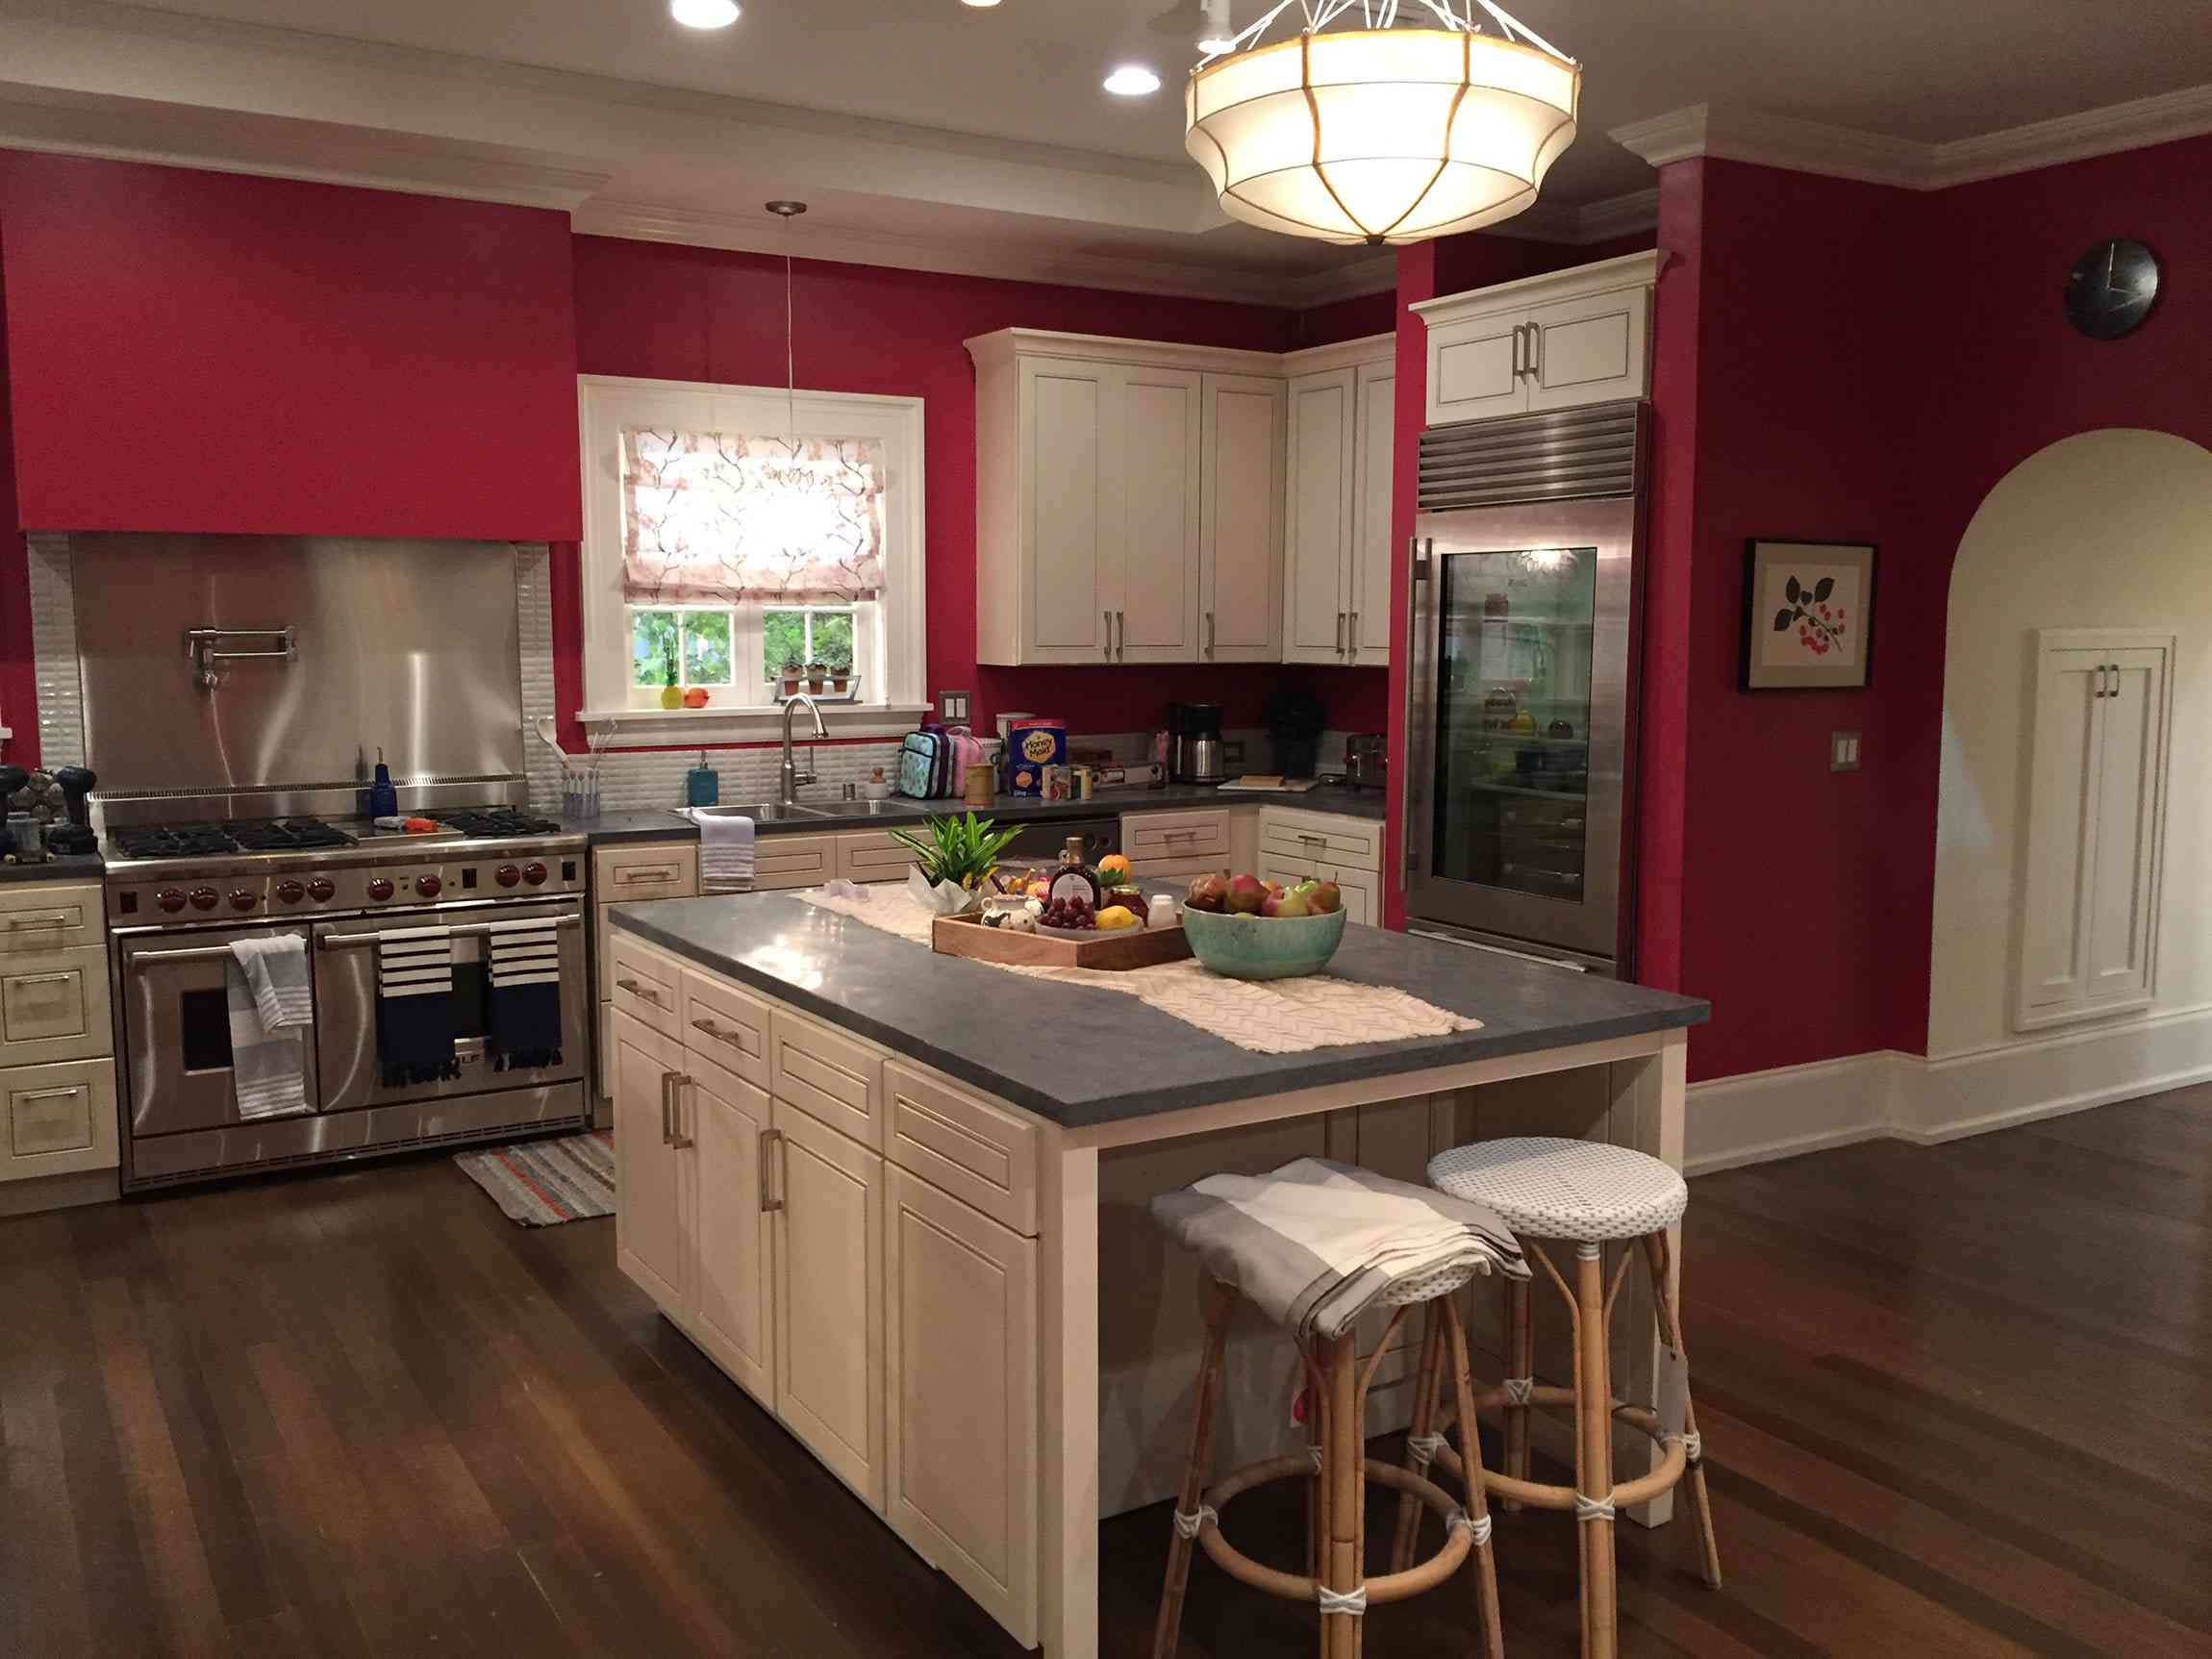 Beth and Randall's kitchen in This is Us